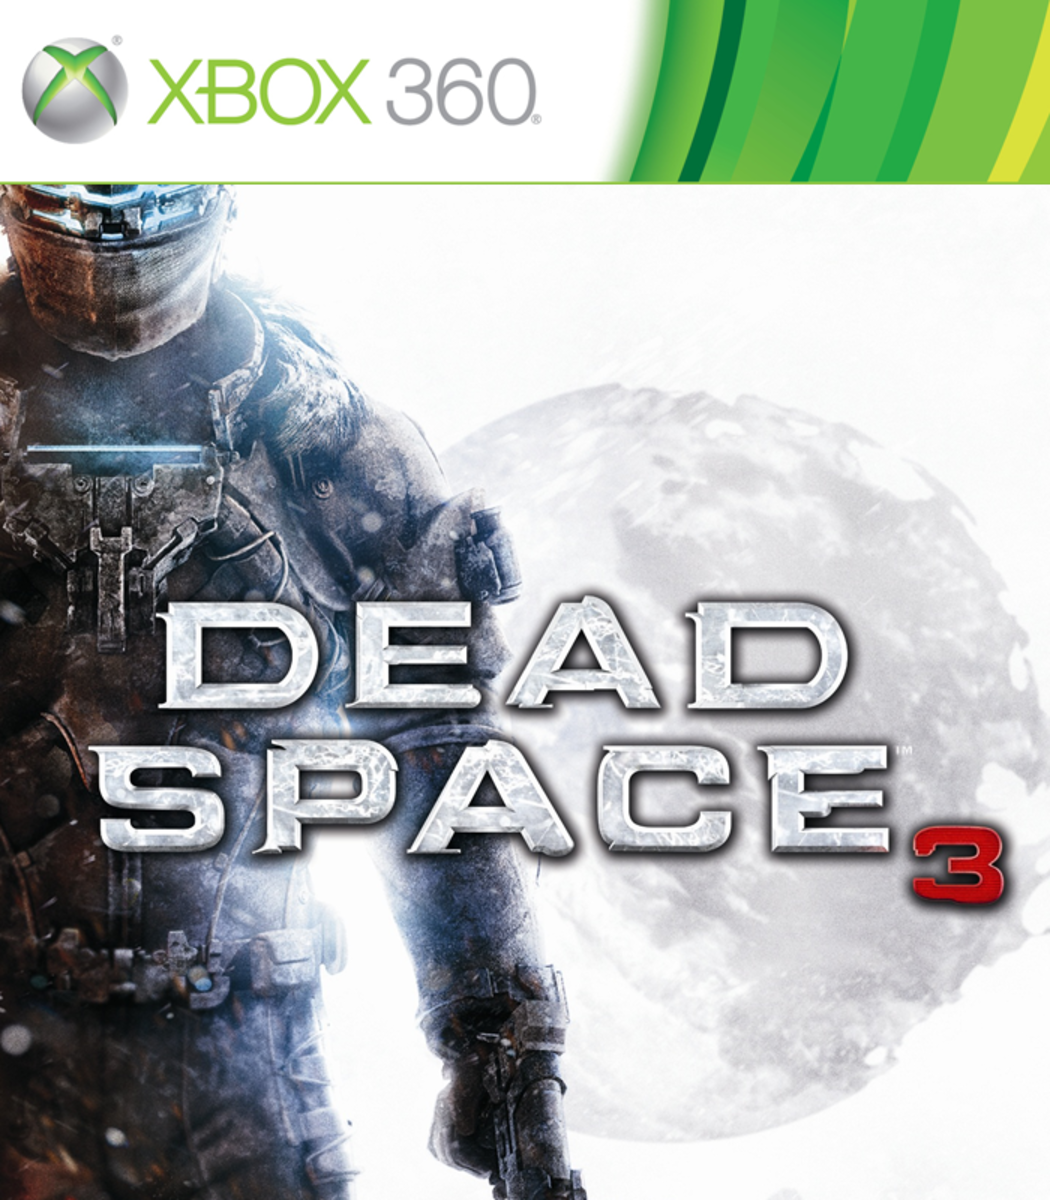 Dead Space 3 XBOX 360 game cover